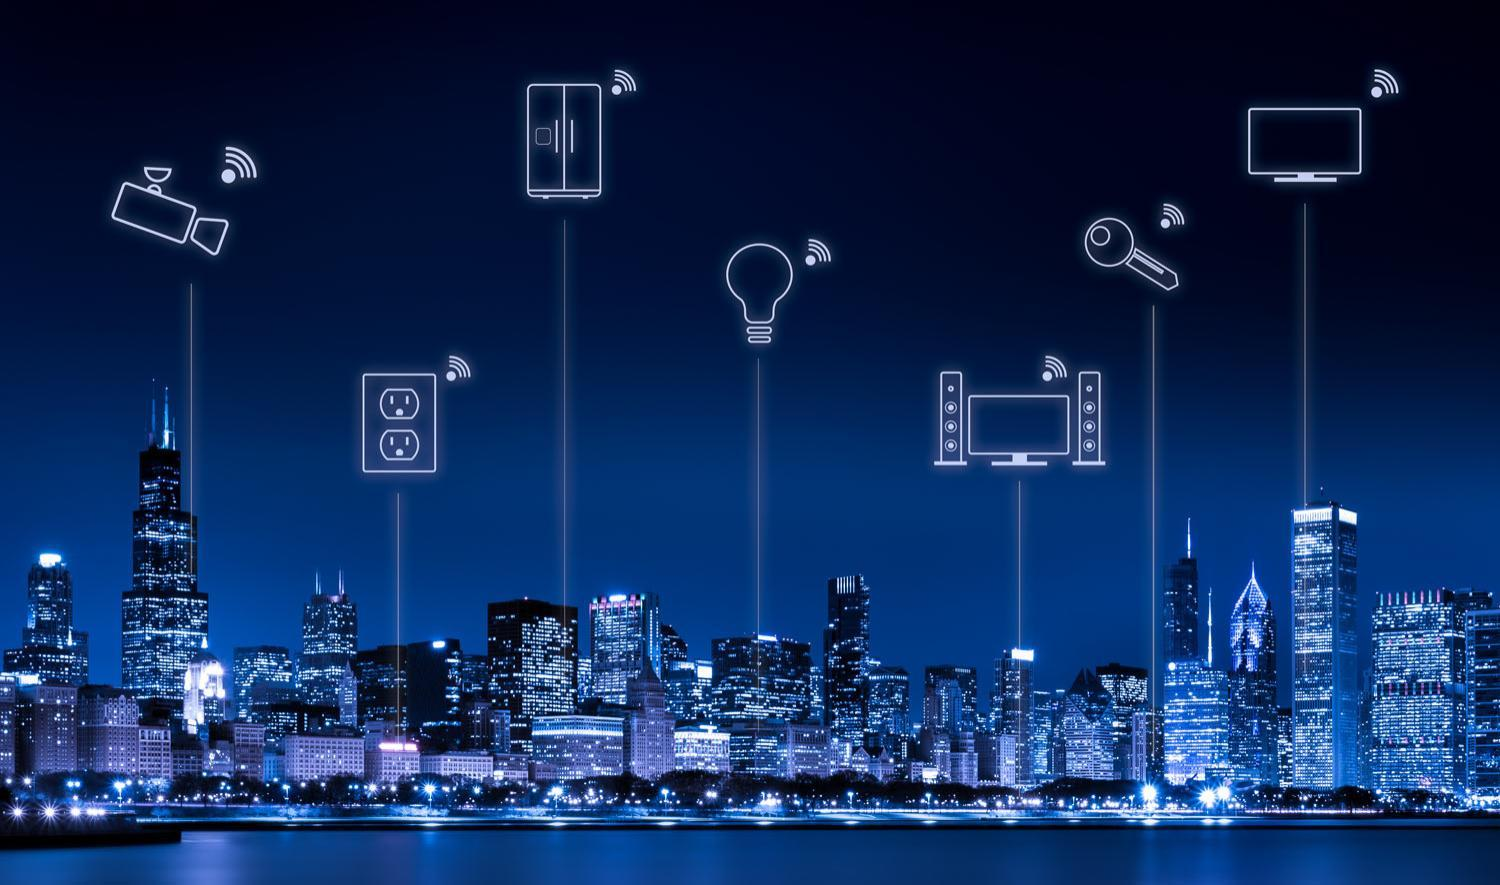 Chicago Skyline with Internet of Things